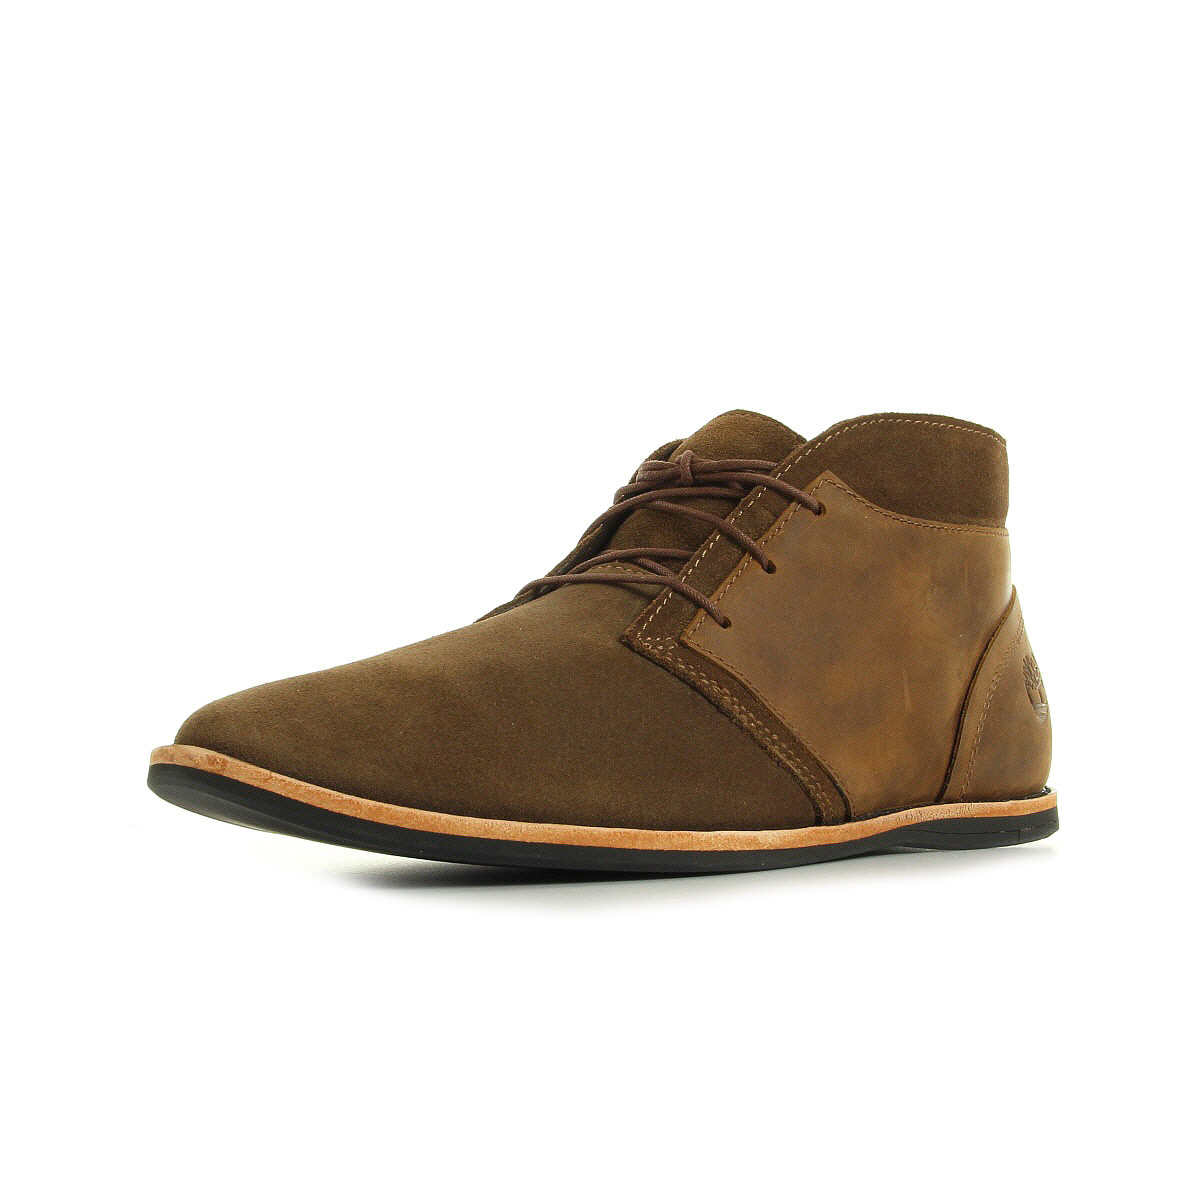 chaussures ville basses timberland homme ekrevnia chka taille marron cuir lacets ebay. Black Bedroom Furniture Sets. Home Design Ideas